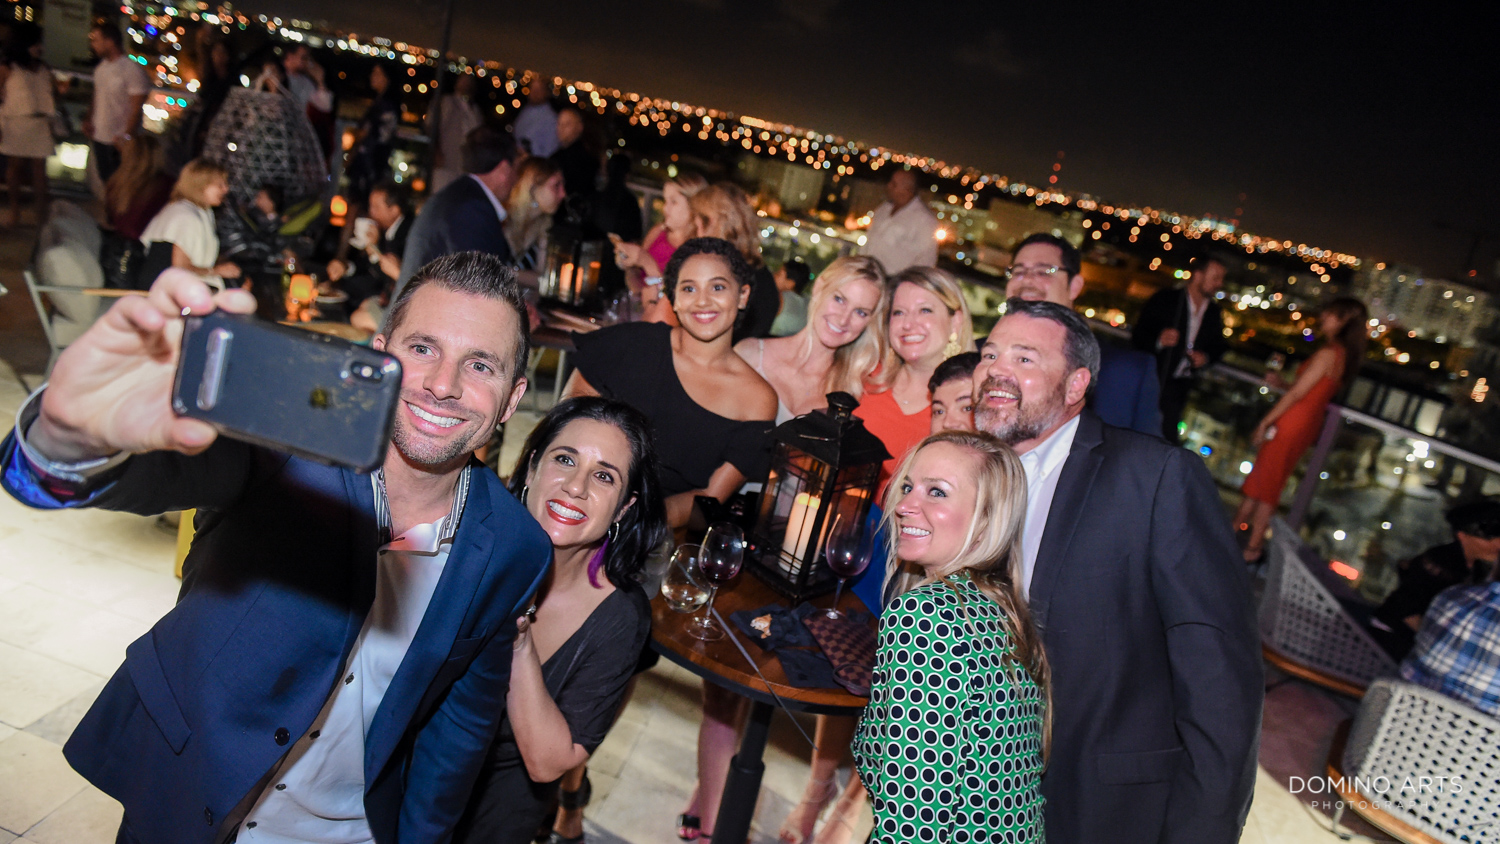 Fun selfie pictures at Circ Hotel Grand Opening Corporate Event in Hollywood, Florida